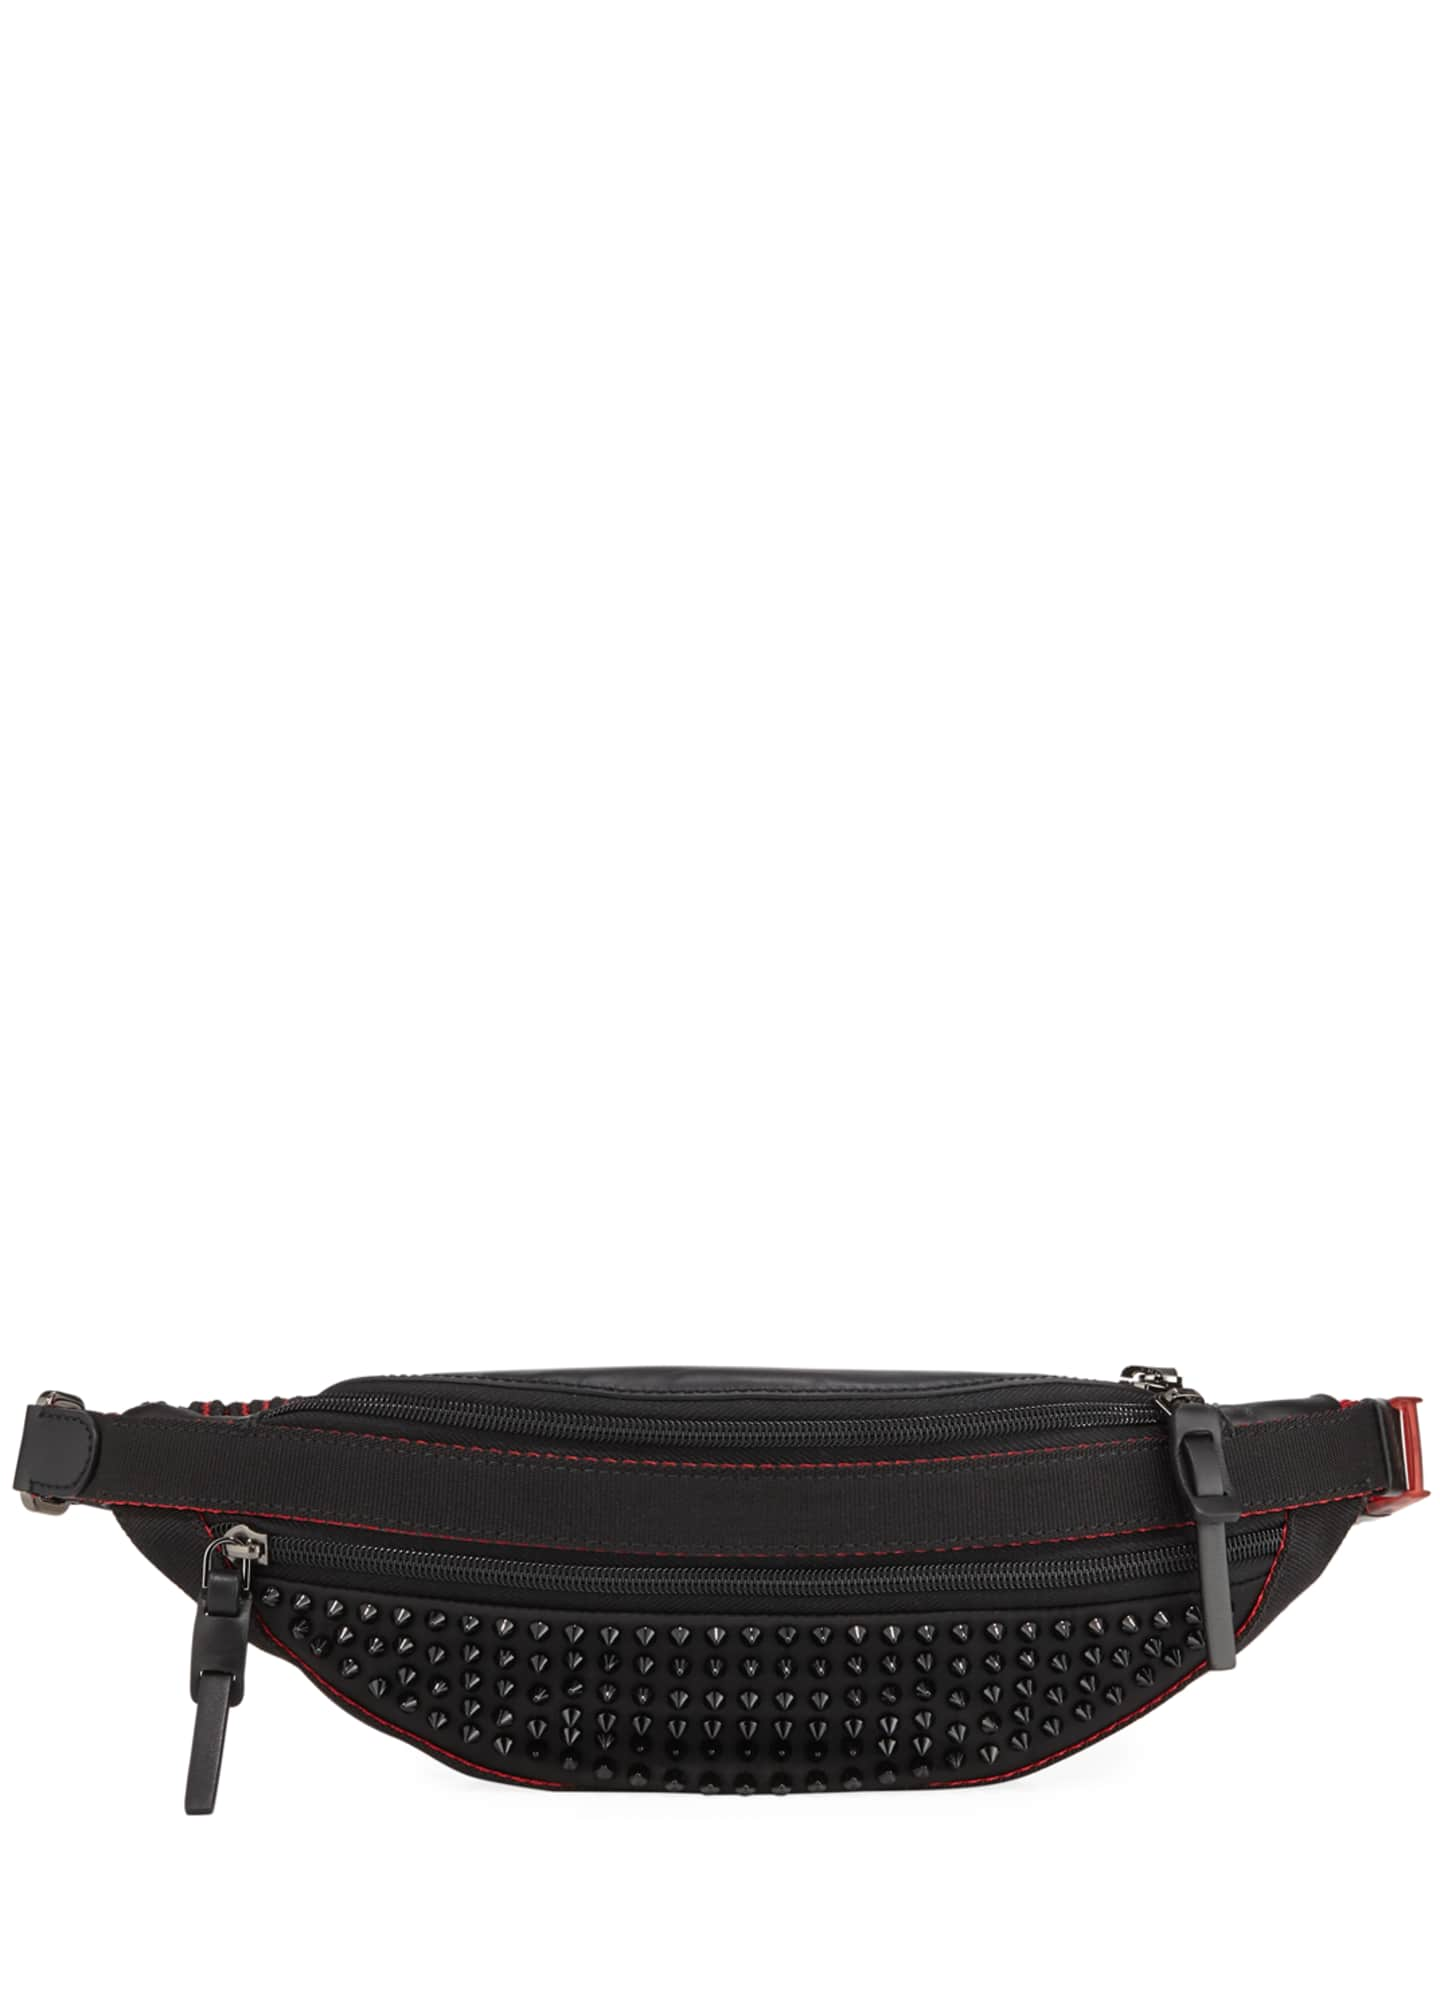 Christian Louboutin Men's Paris NYC Spike Belt Bag/Fanny